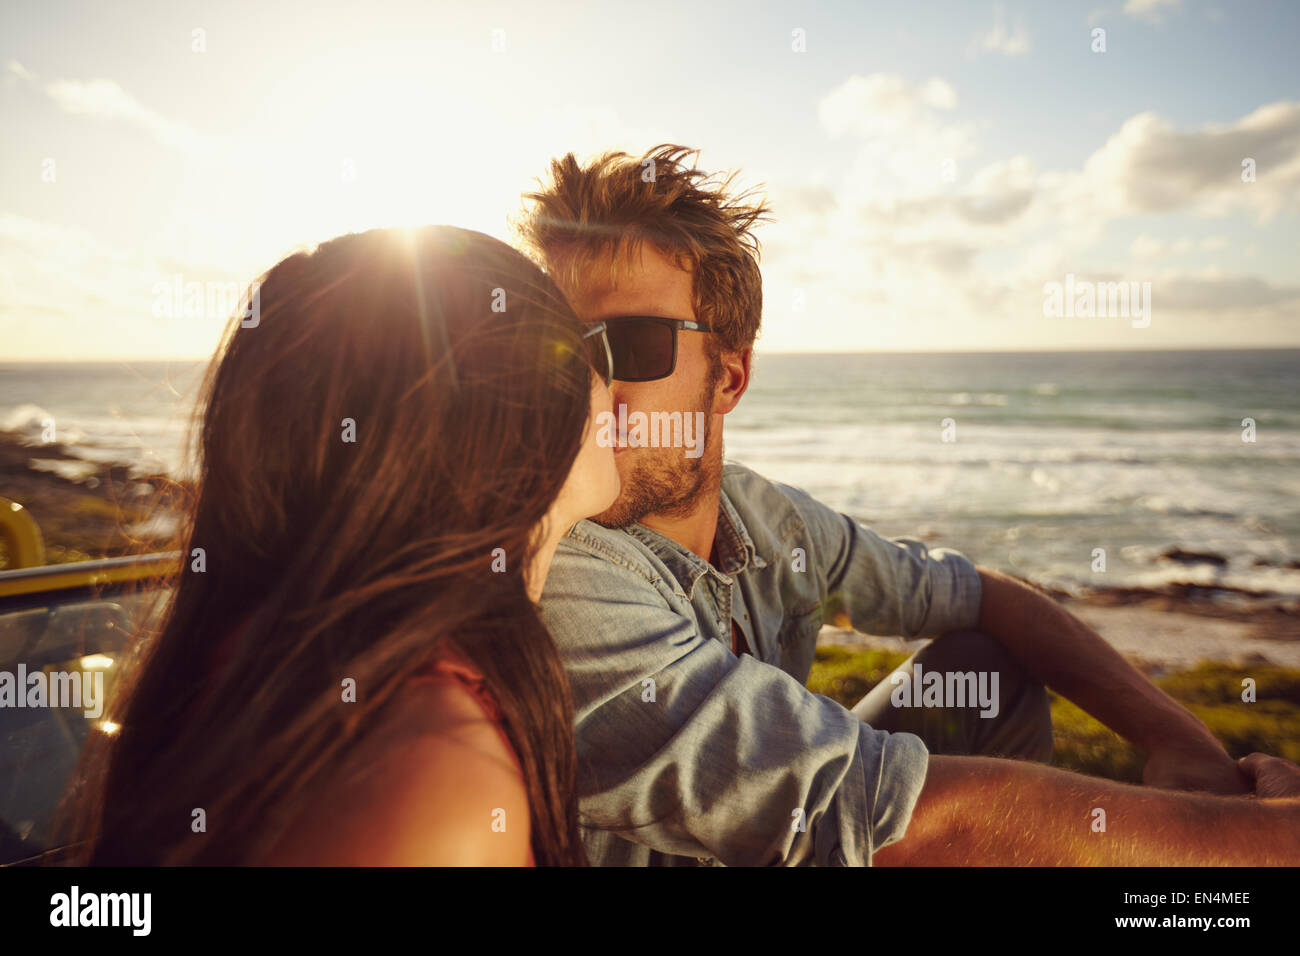 Affectionate young couple kissing at the beach. Loving young couple with sea shore in background. Romantic couple - Stock Image